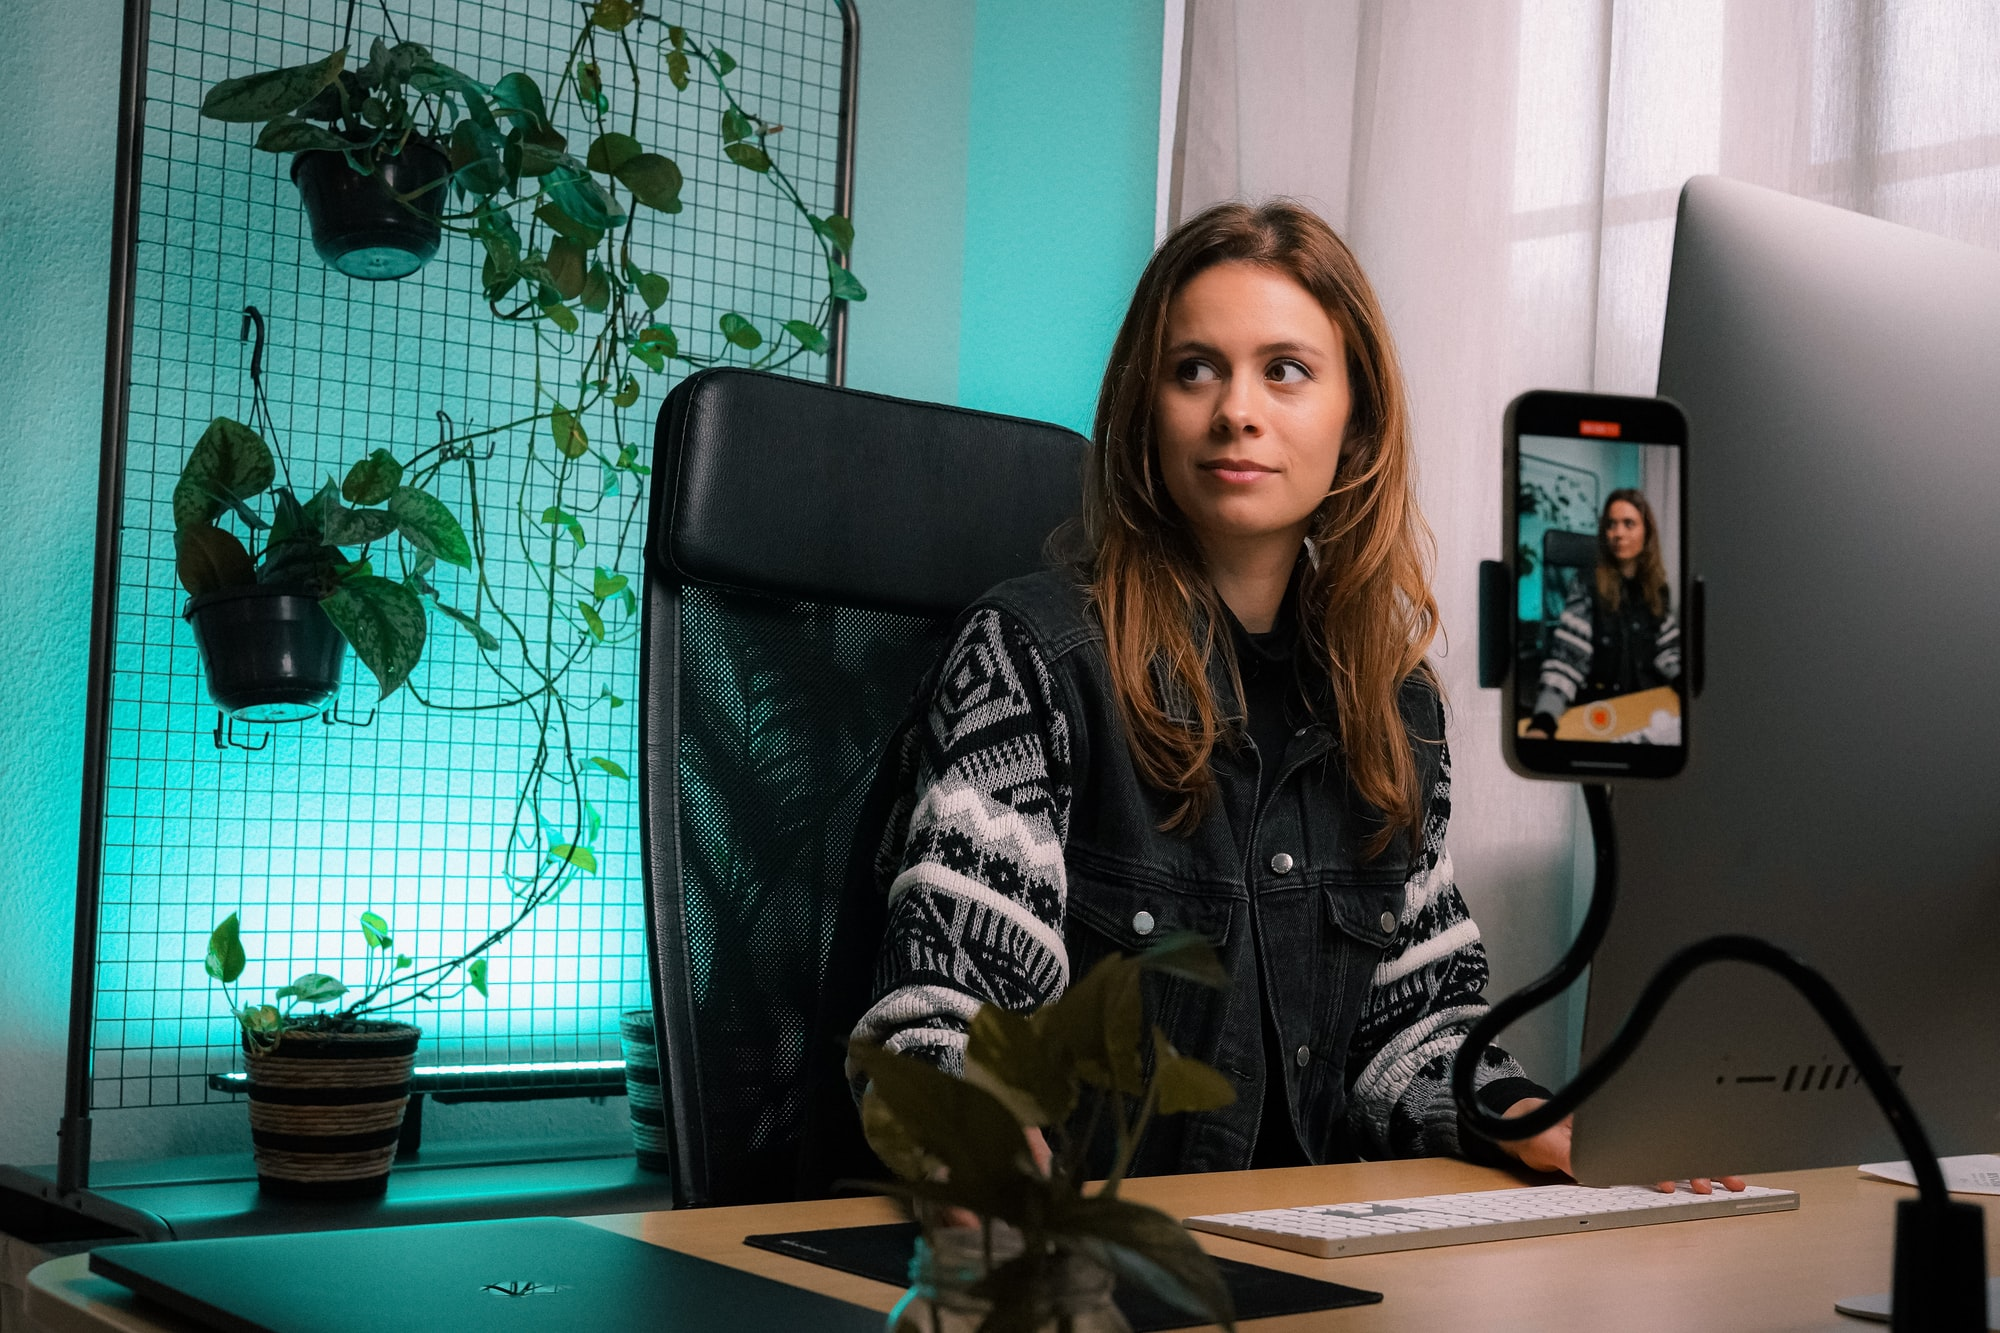 Jenny Ueberberg, female entrepreneur working in an office and making videos.